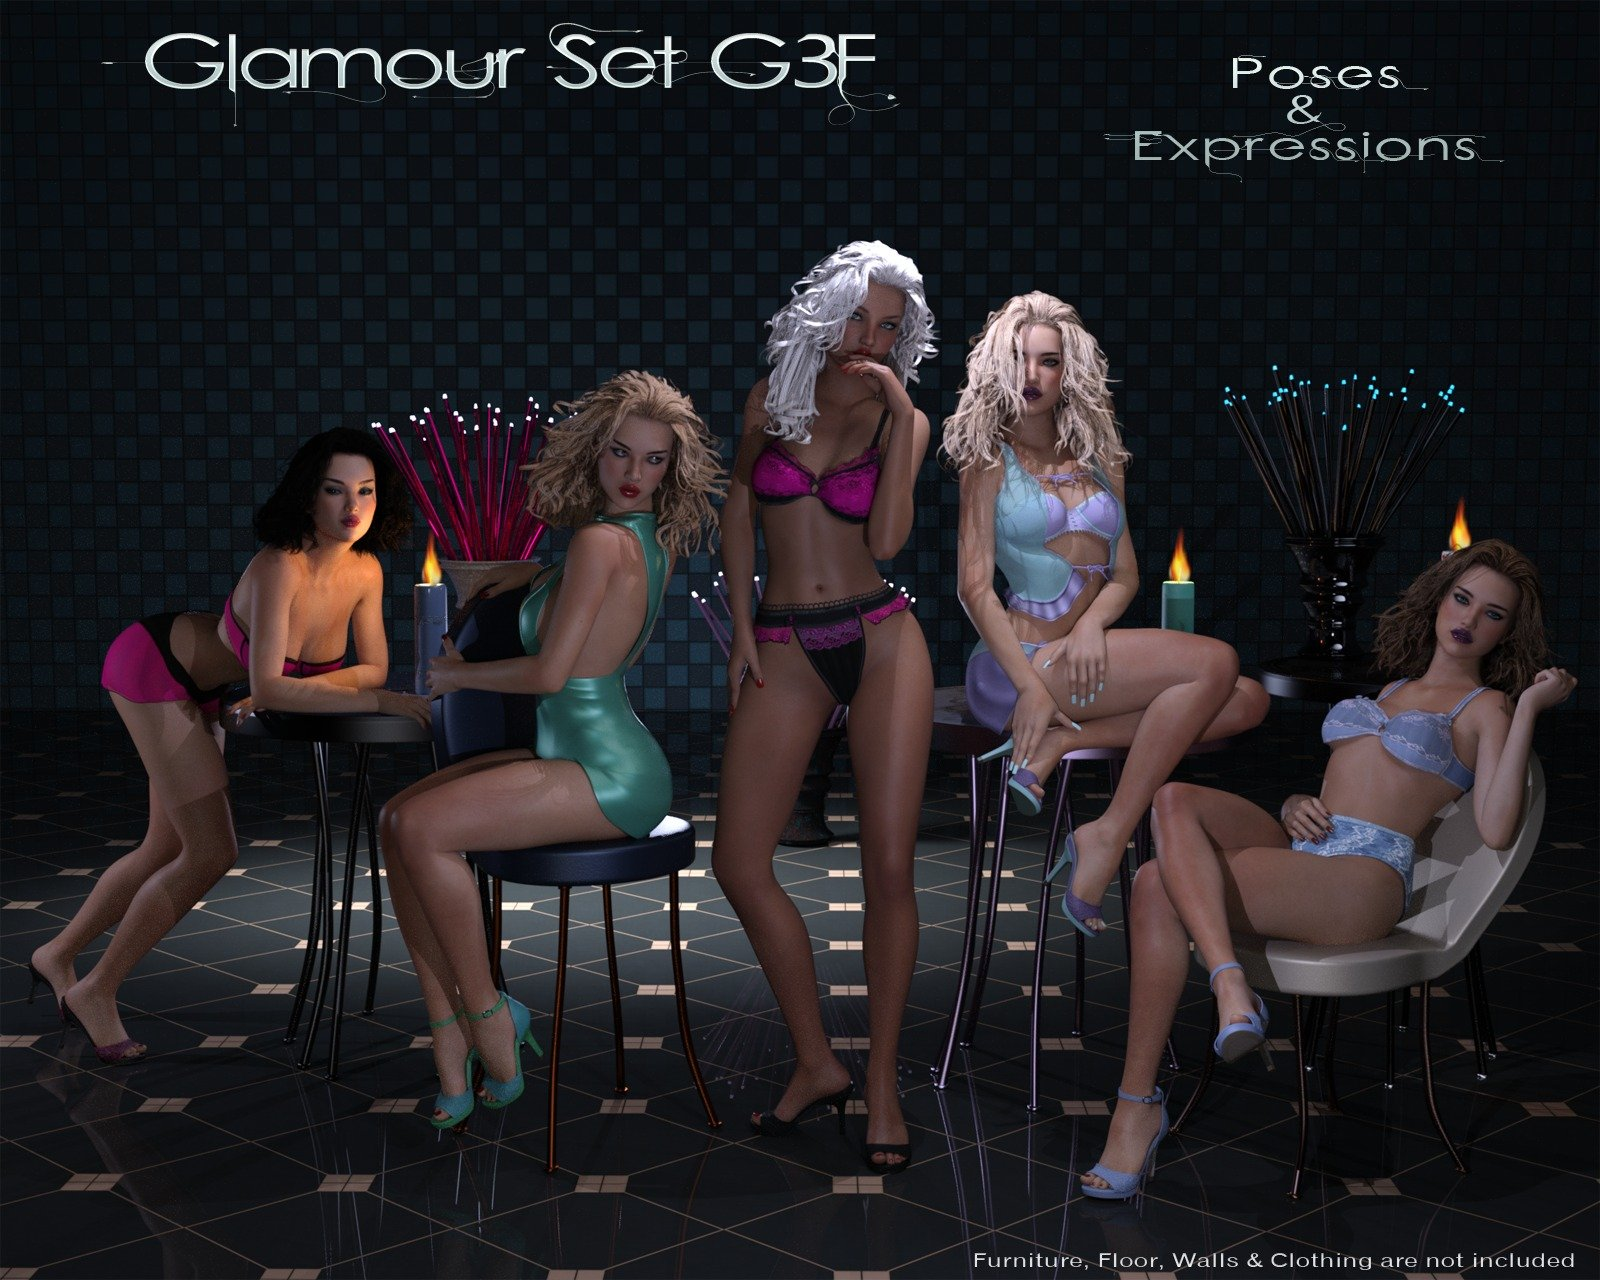 Glamour Set G3F Poses & Expressions